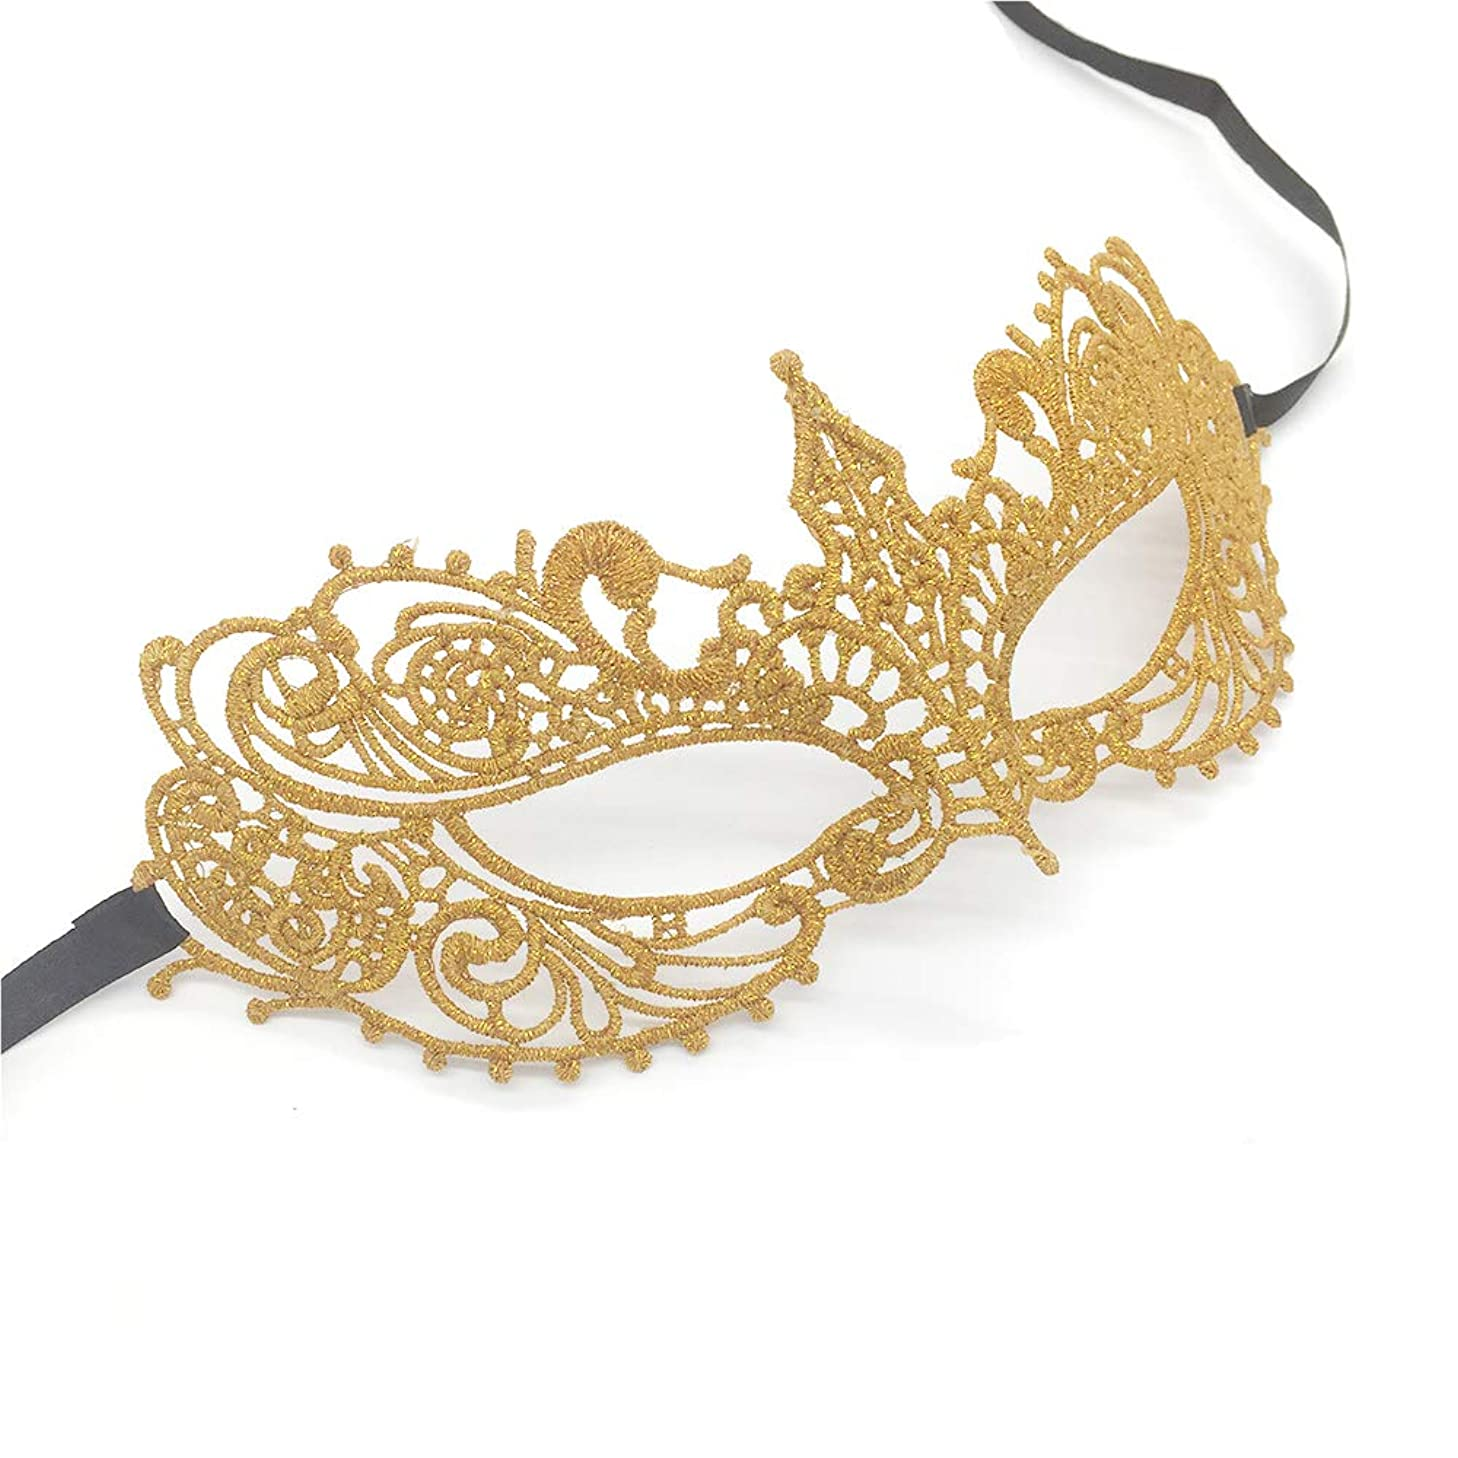 Gold Sexy Lace Masquerade Mask for Women on Carnival Ball, Exquisite High-end Lace Eye mask for Halloween Party